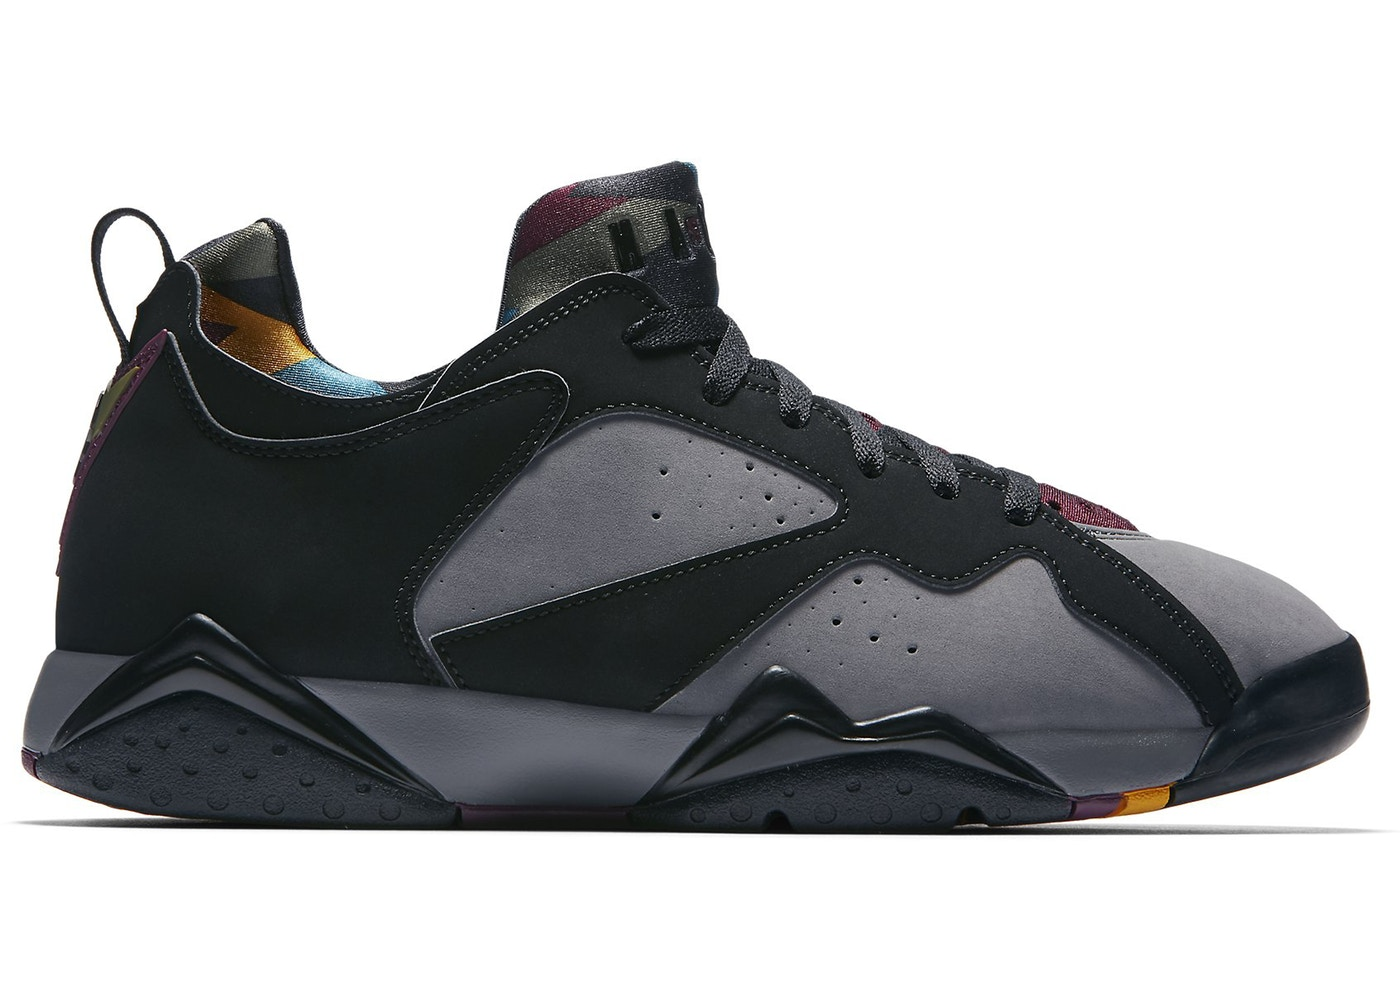 aa1d8543bf8550 Jordan 7 Retro Low Bordeaux - TBD